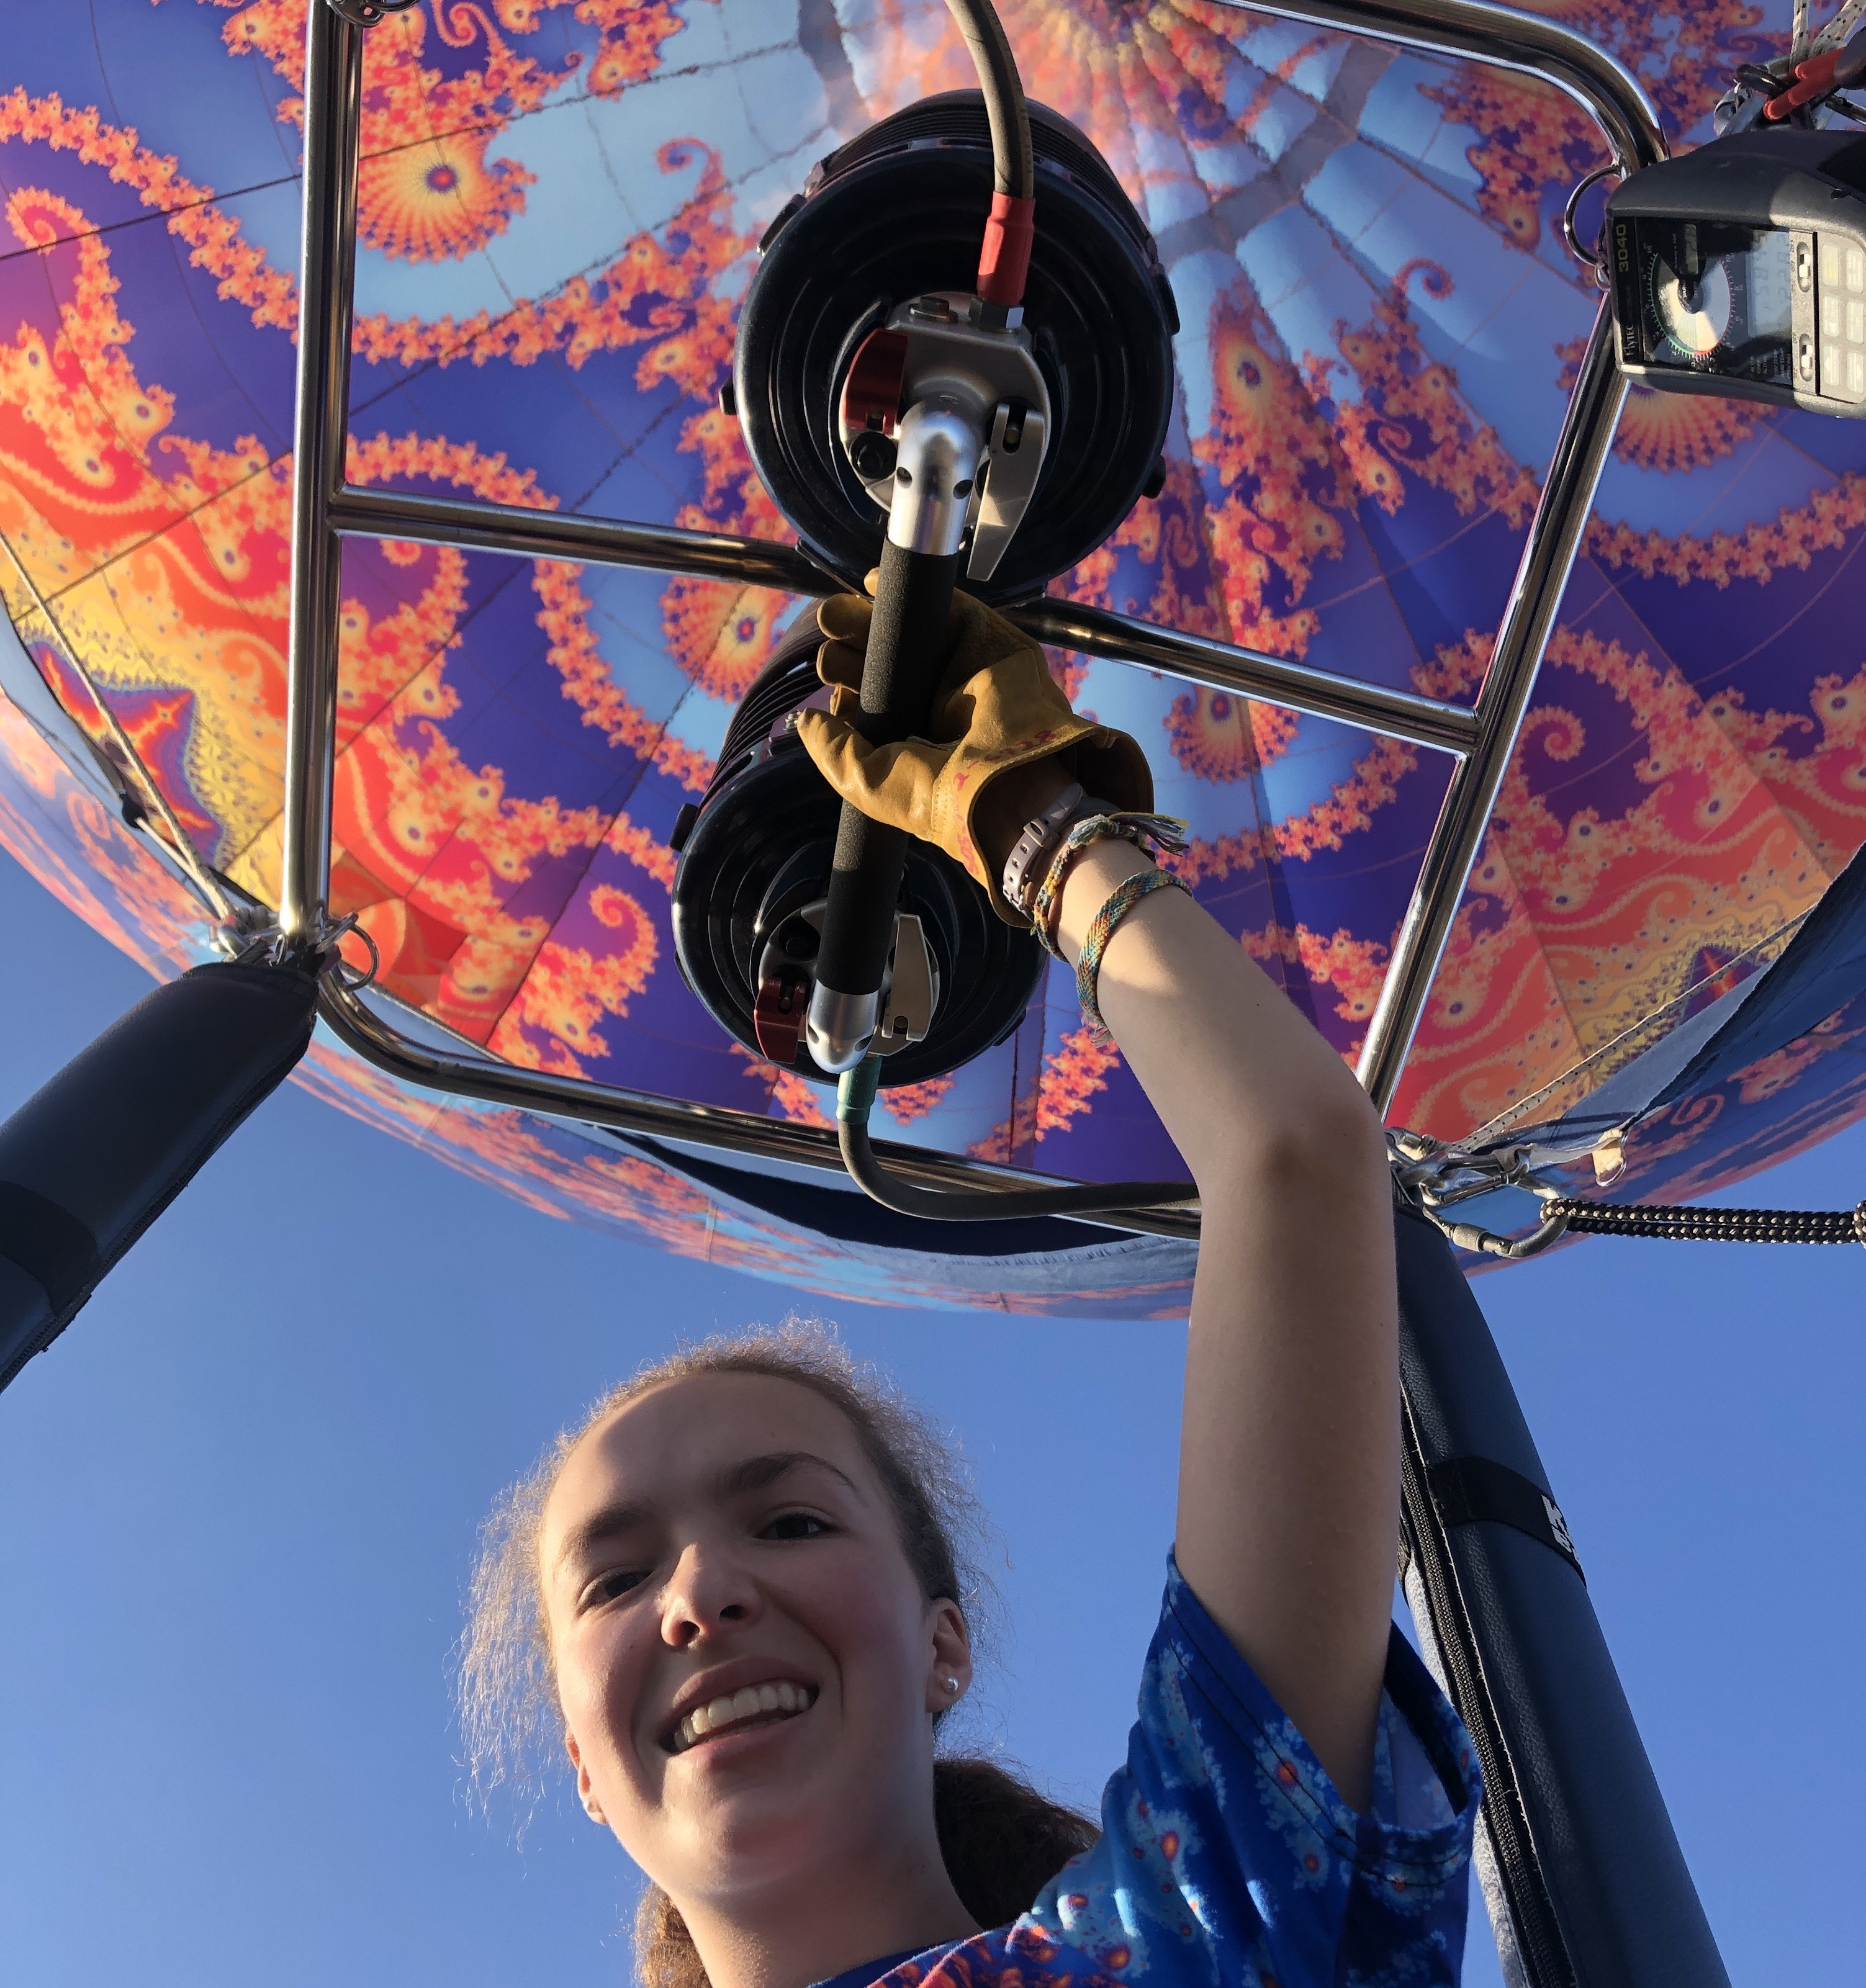 Caption: Julia Wolfe, 15 year old hot air balloon pilot in training, Credit: Dr. Jonathan Wolfe